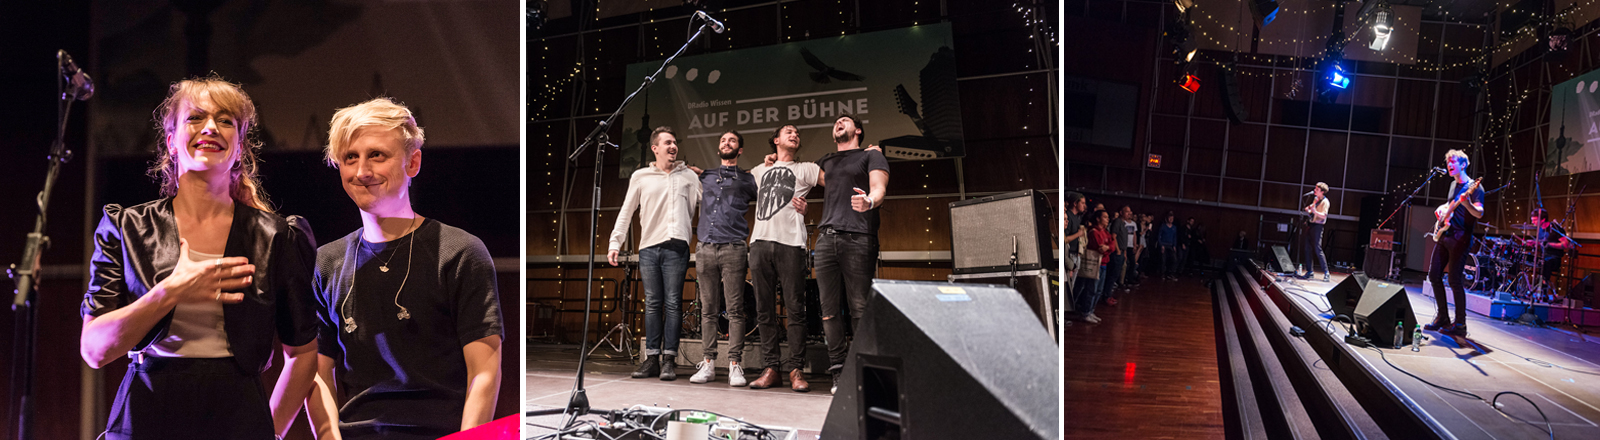 Die drei Bands: Me Me And My Drummer (links), KYTES (Mitte), Sparkling (rechts)